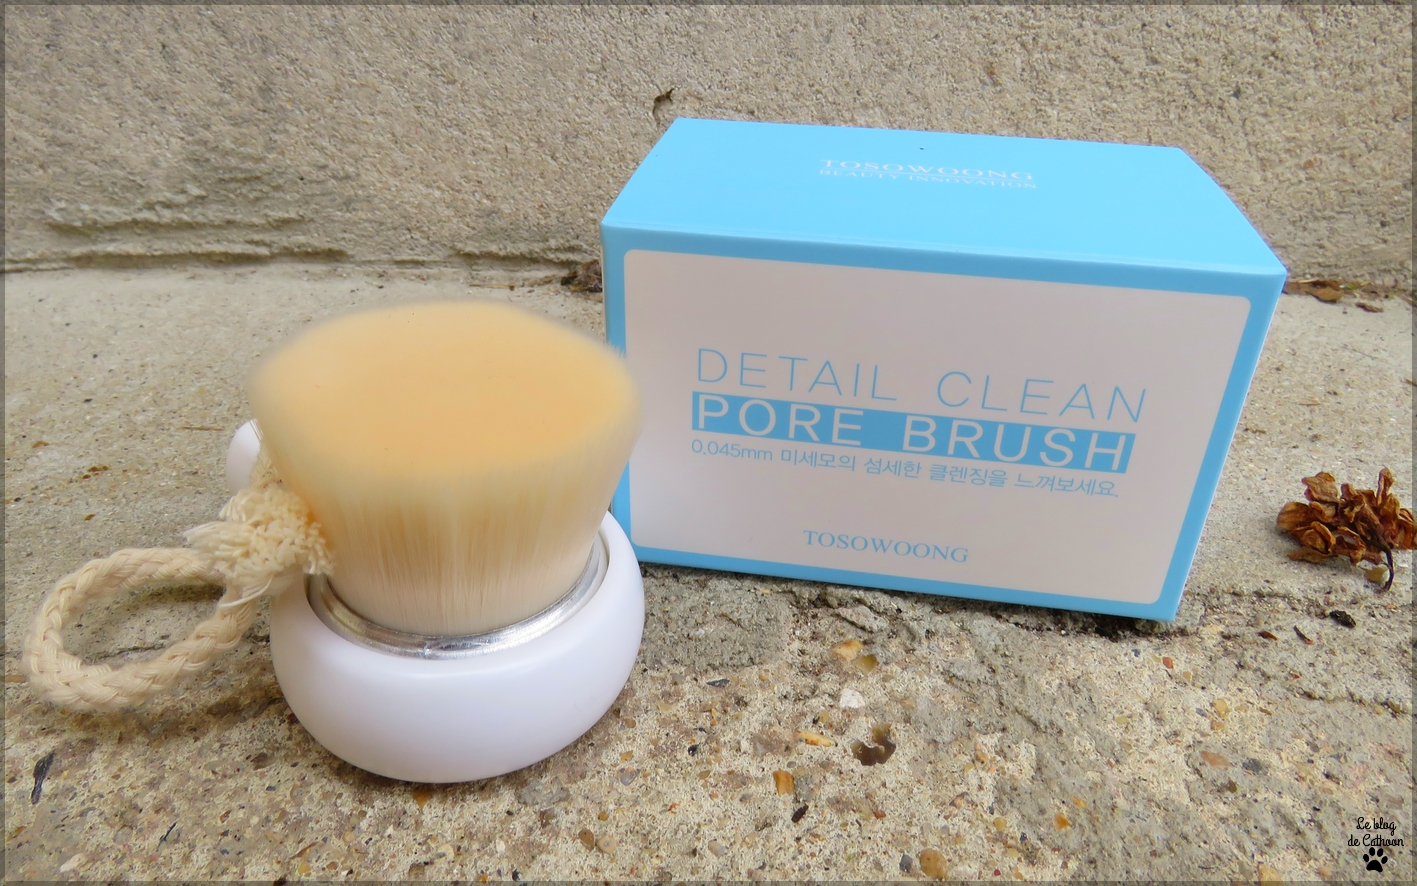 Detail Clean Pore Brush - Brosse nettoyante visage - Tosowoong